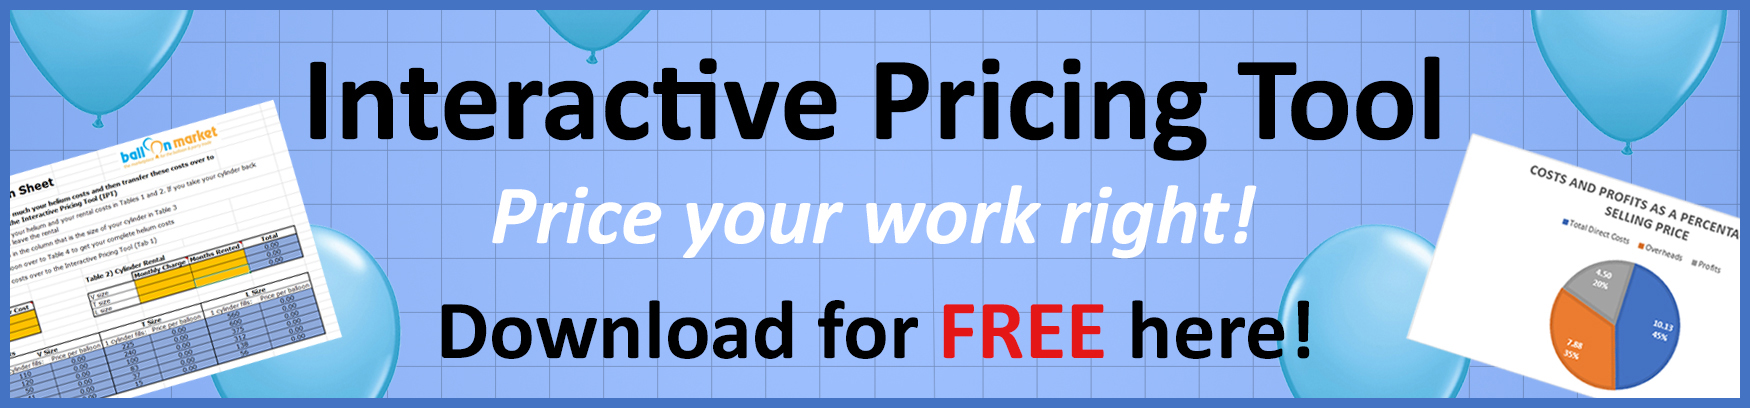 Interactive Pricing Tool image